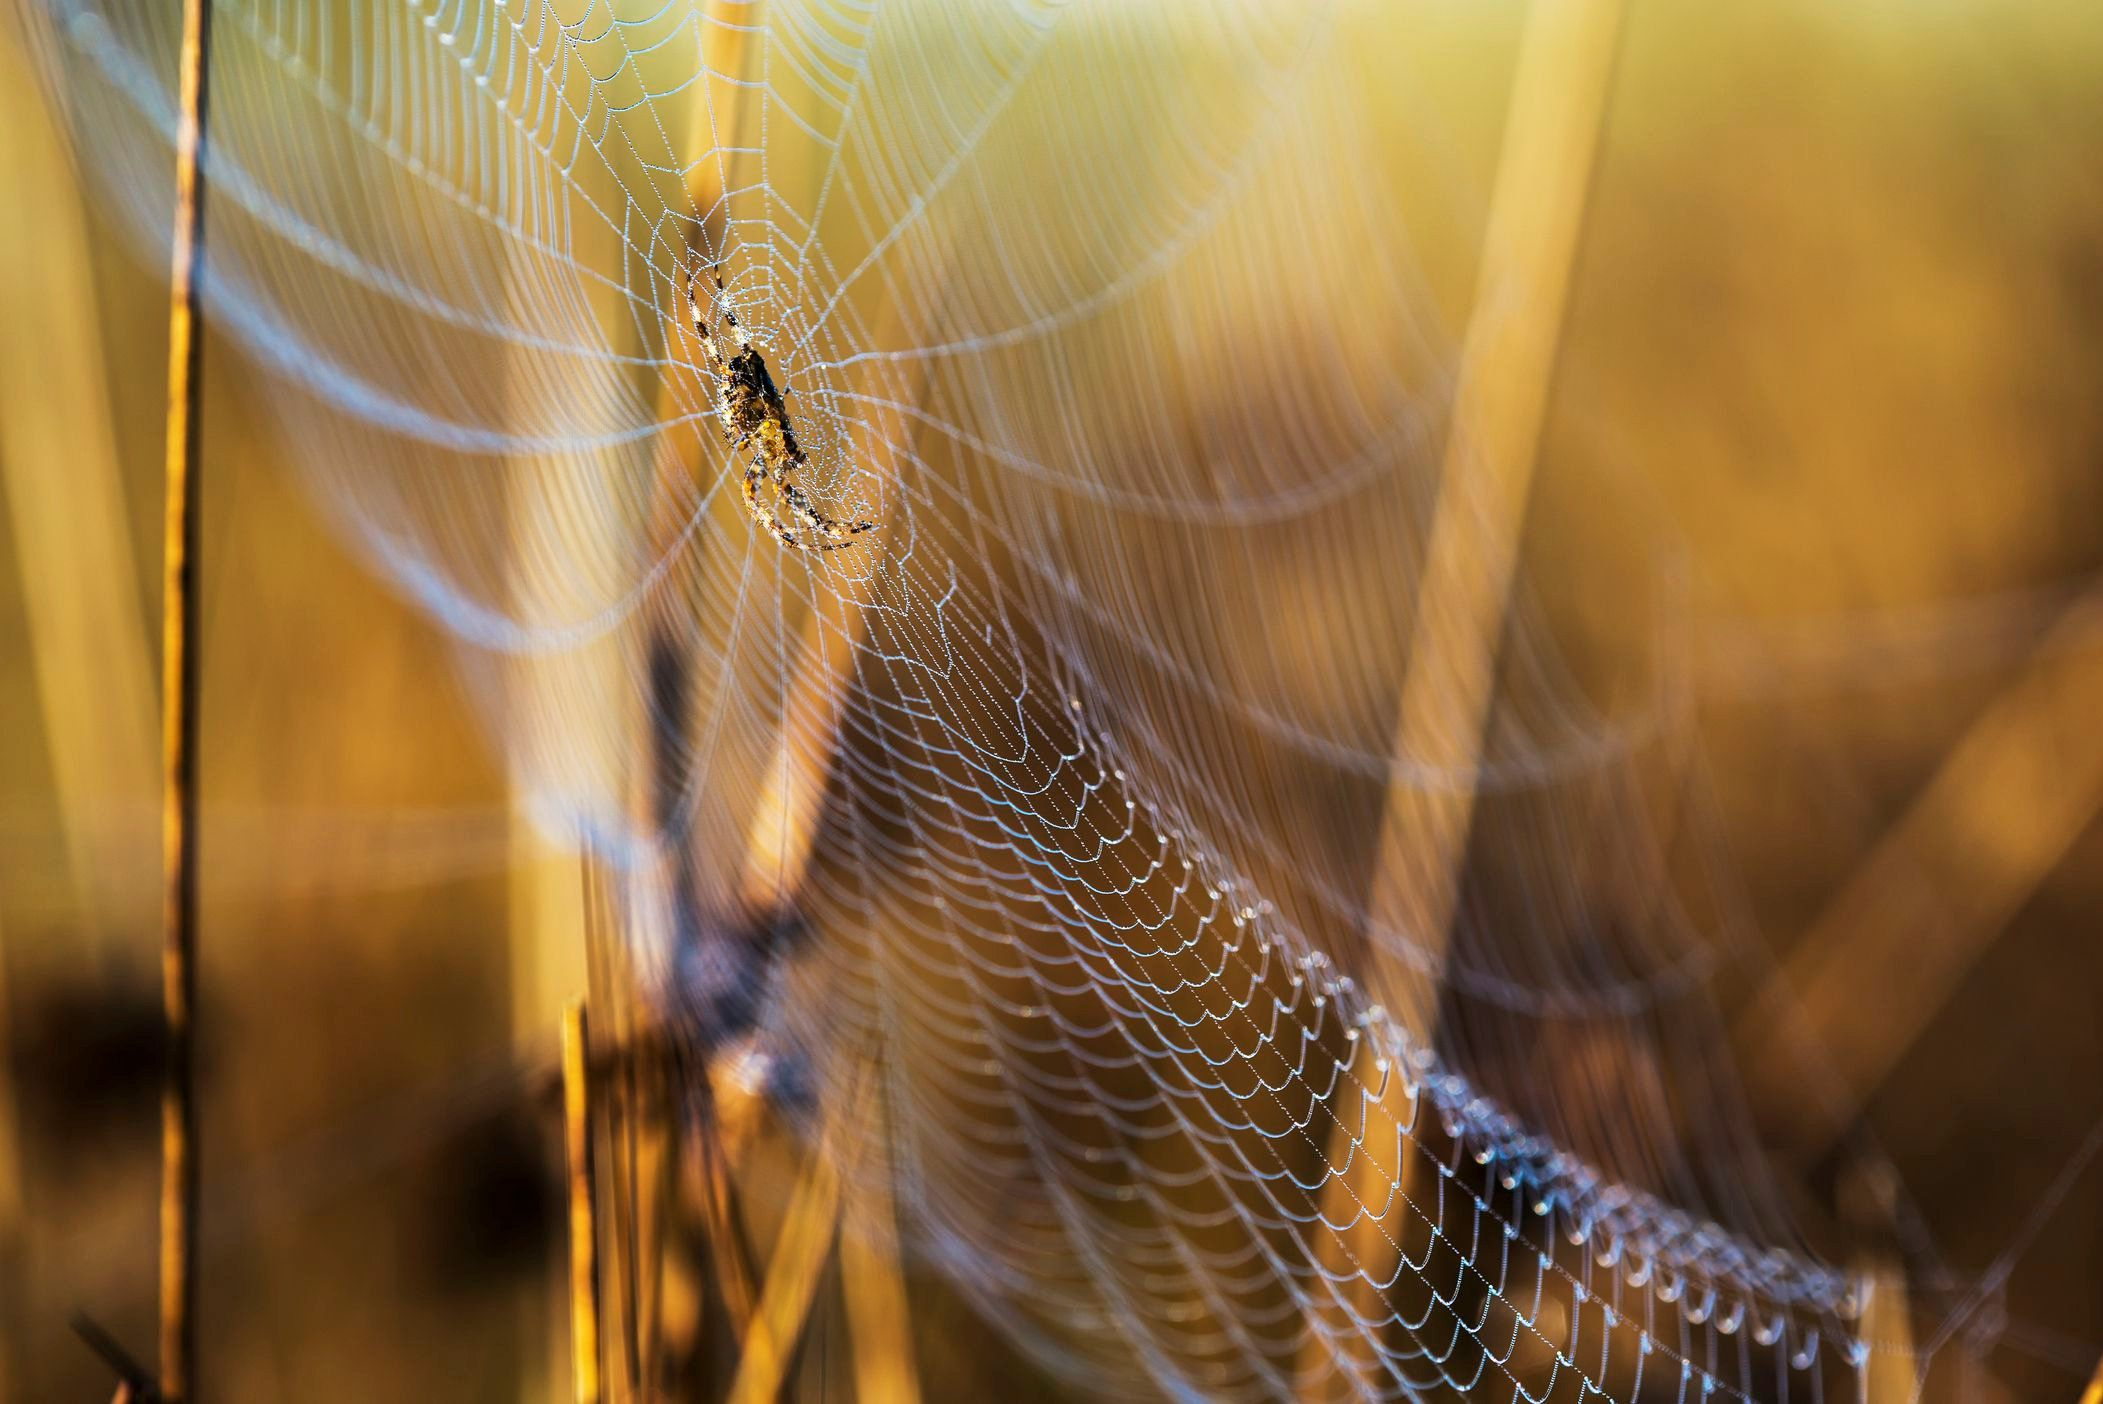 Learn About Orb Weaver Spiders, Family Araneidae